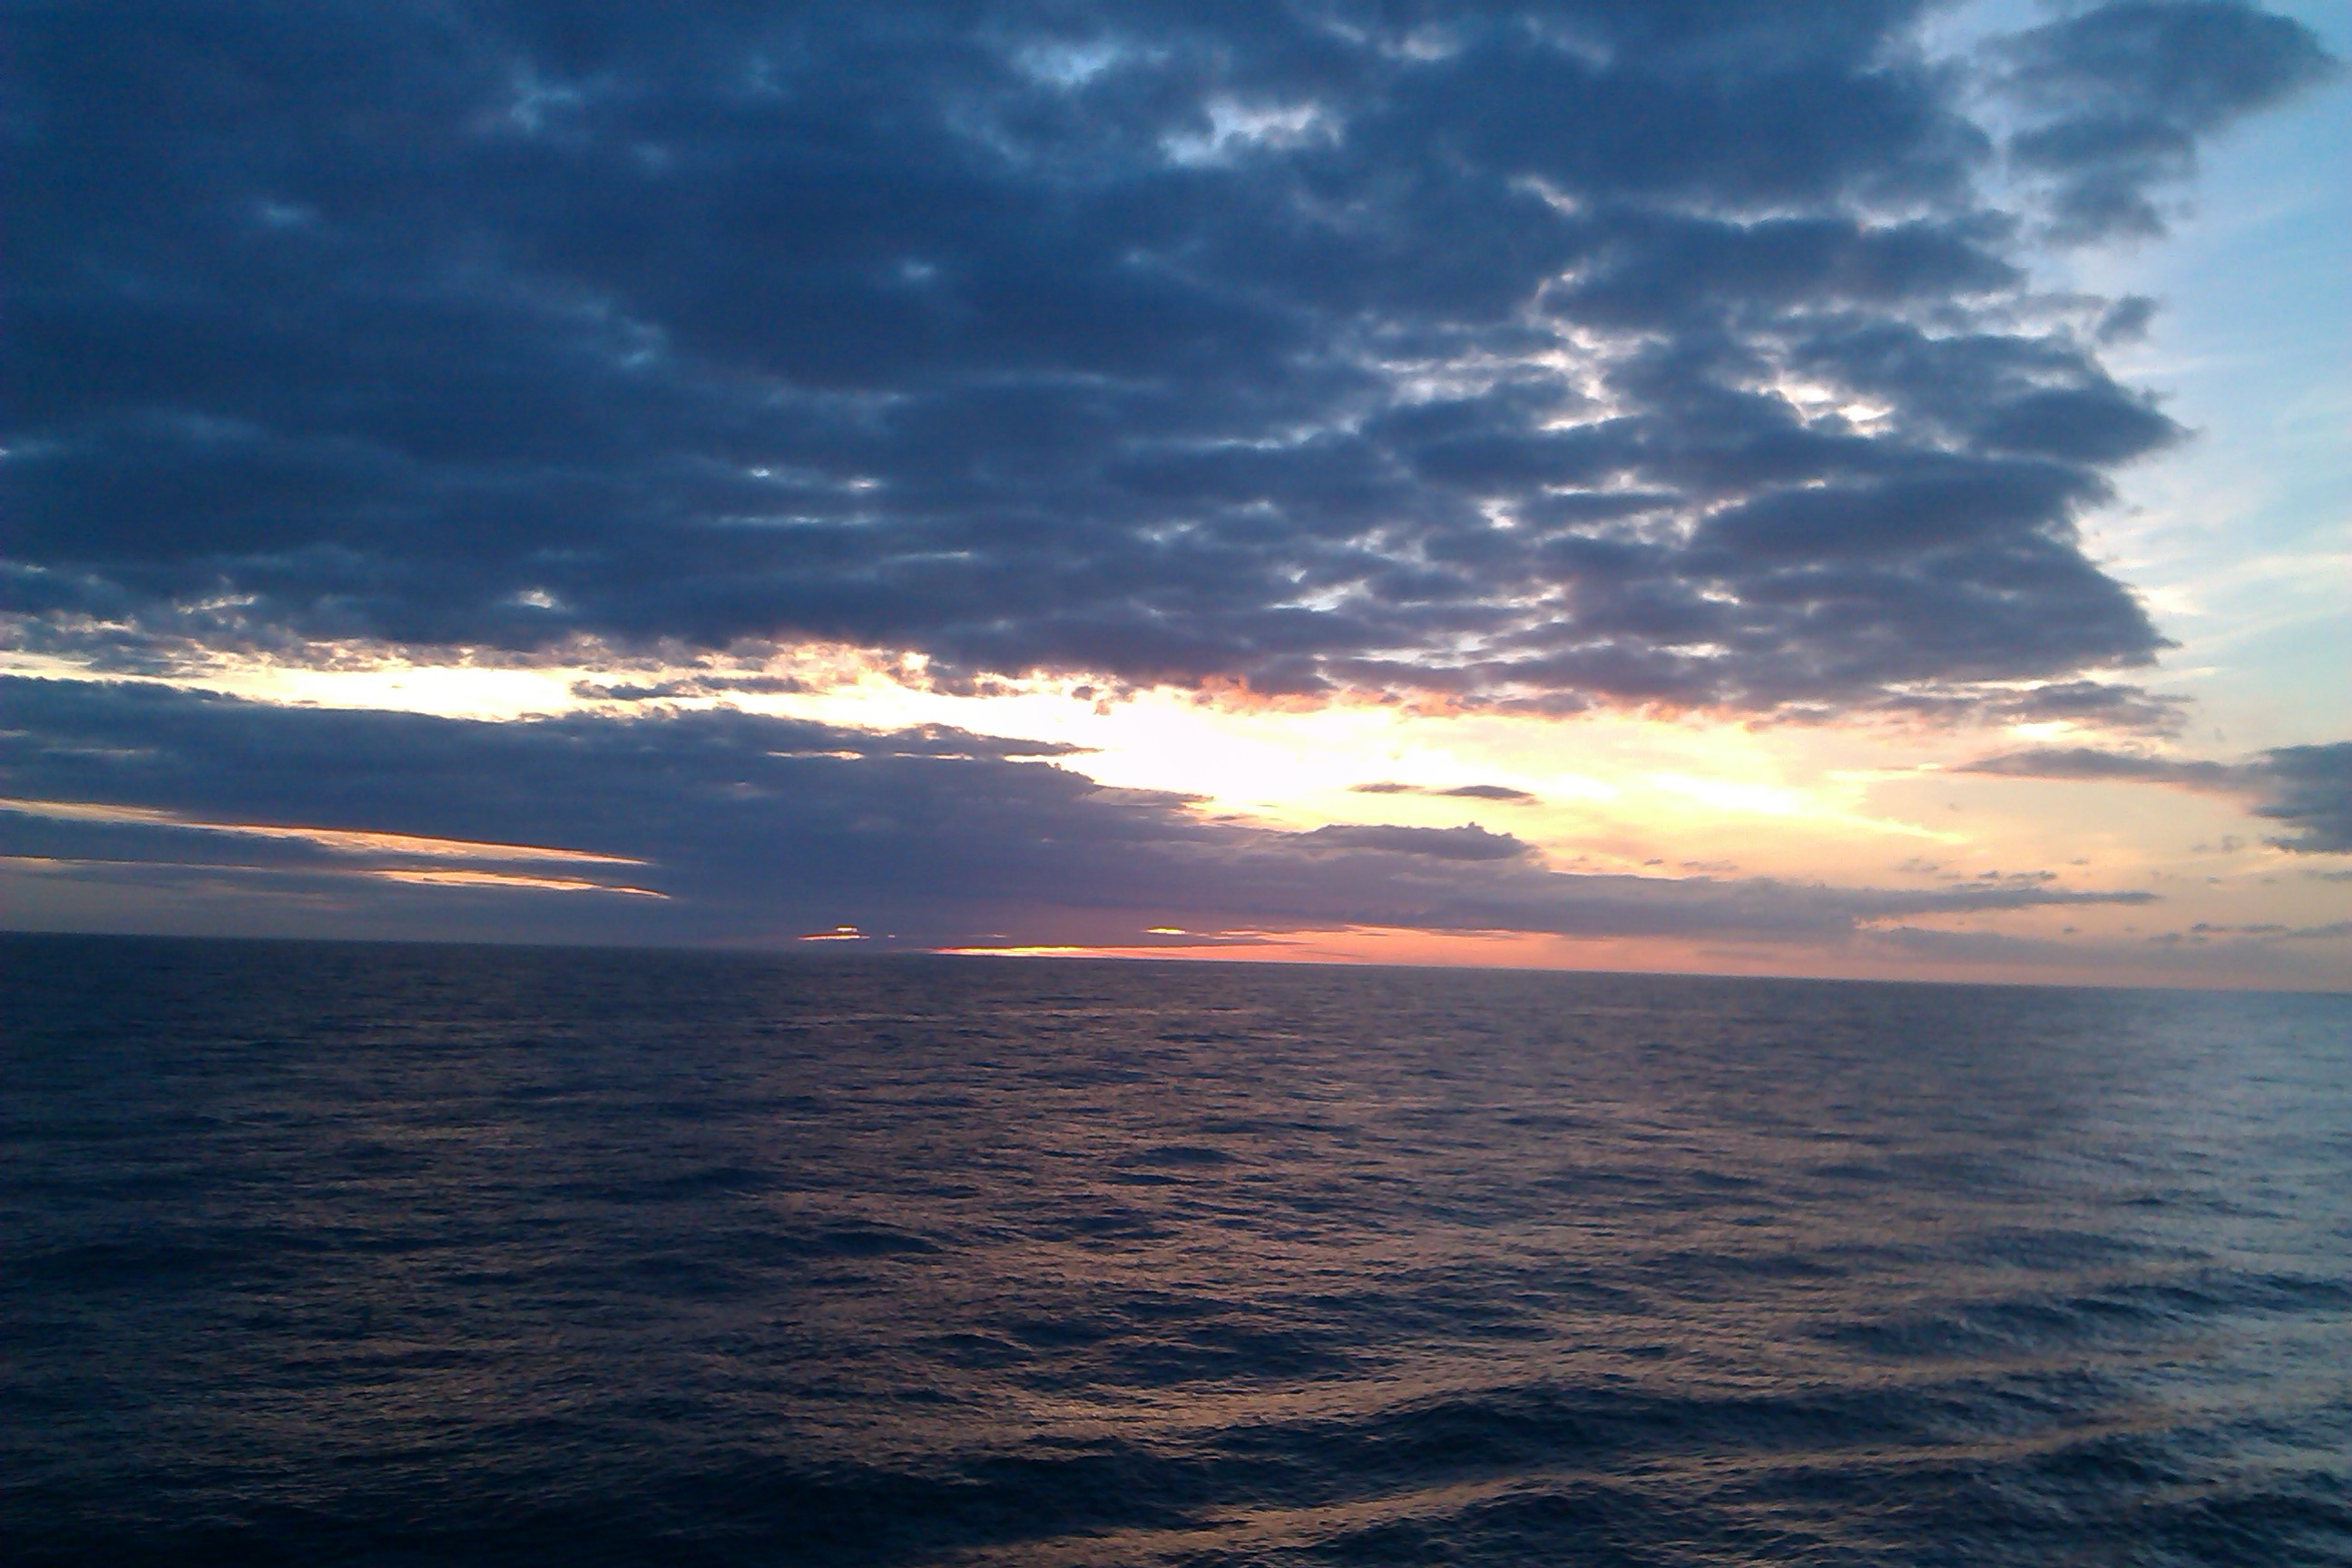 A pretty sunset from our #cruiseofamazingness